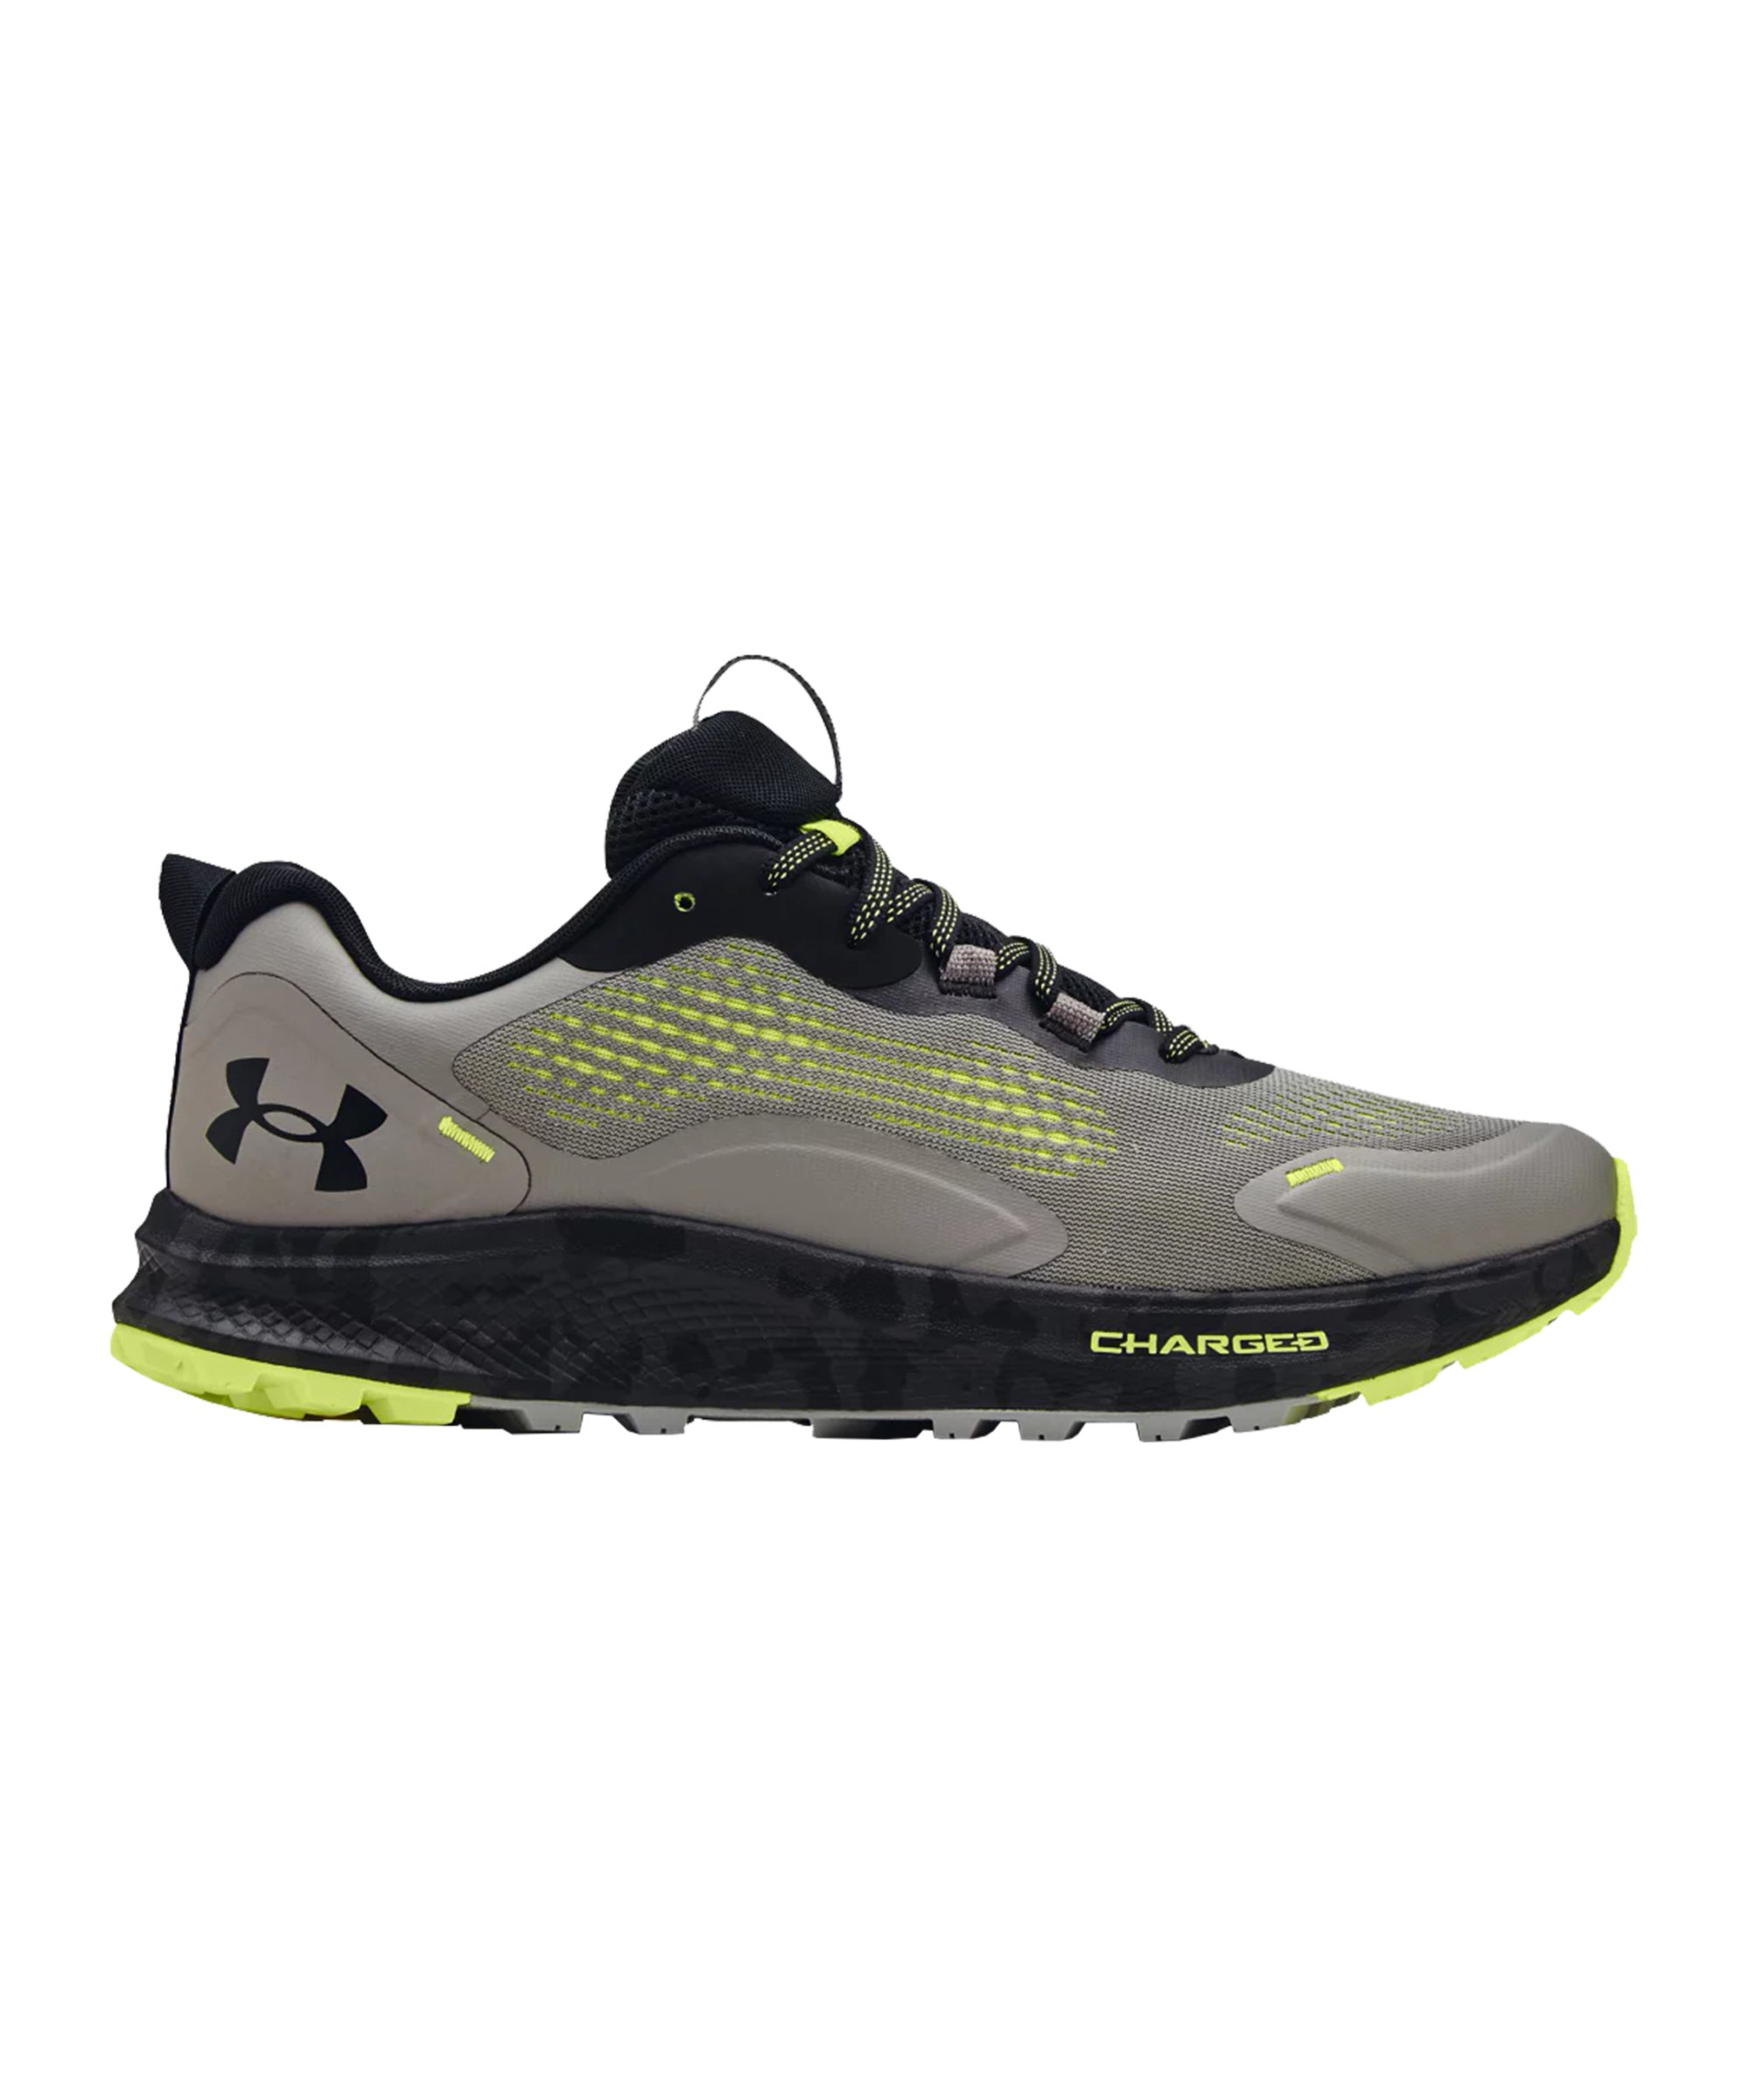 Under Armour Charged Bandit Trail 2 Running F101 - grau